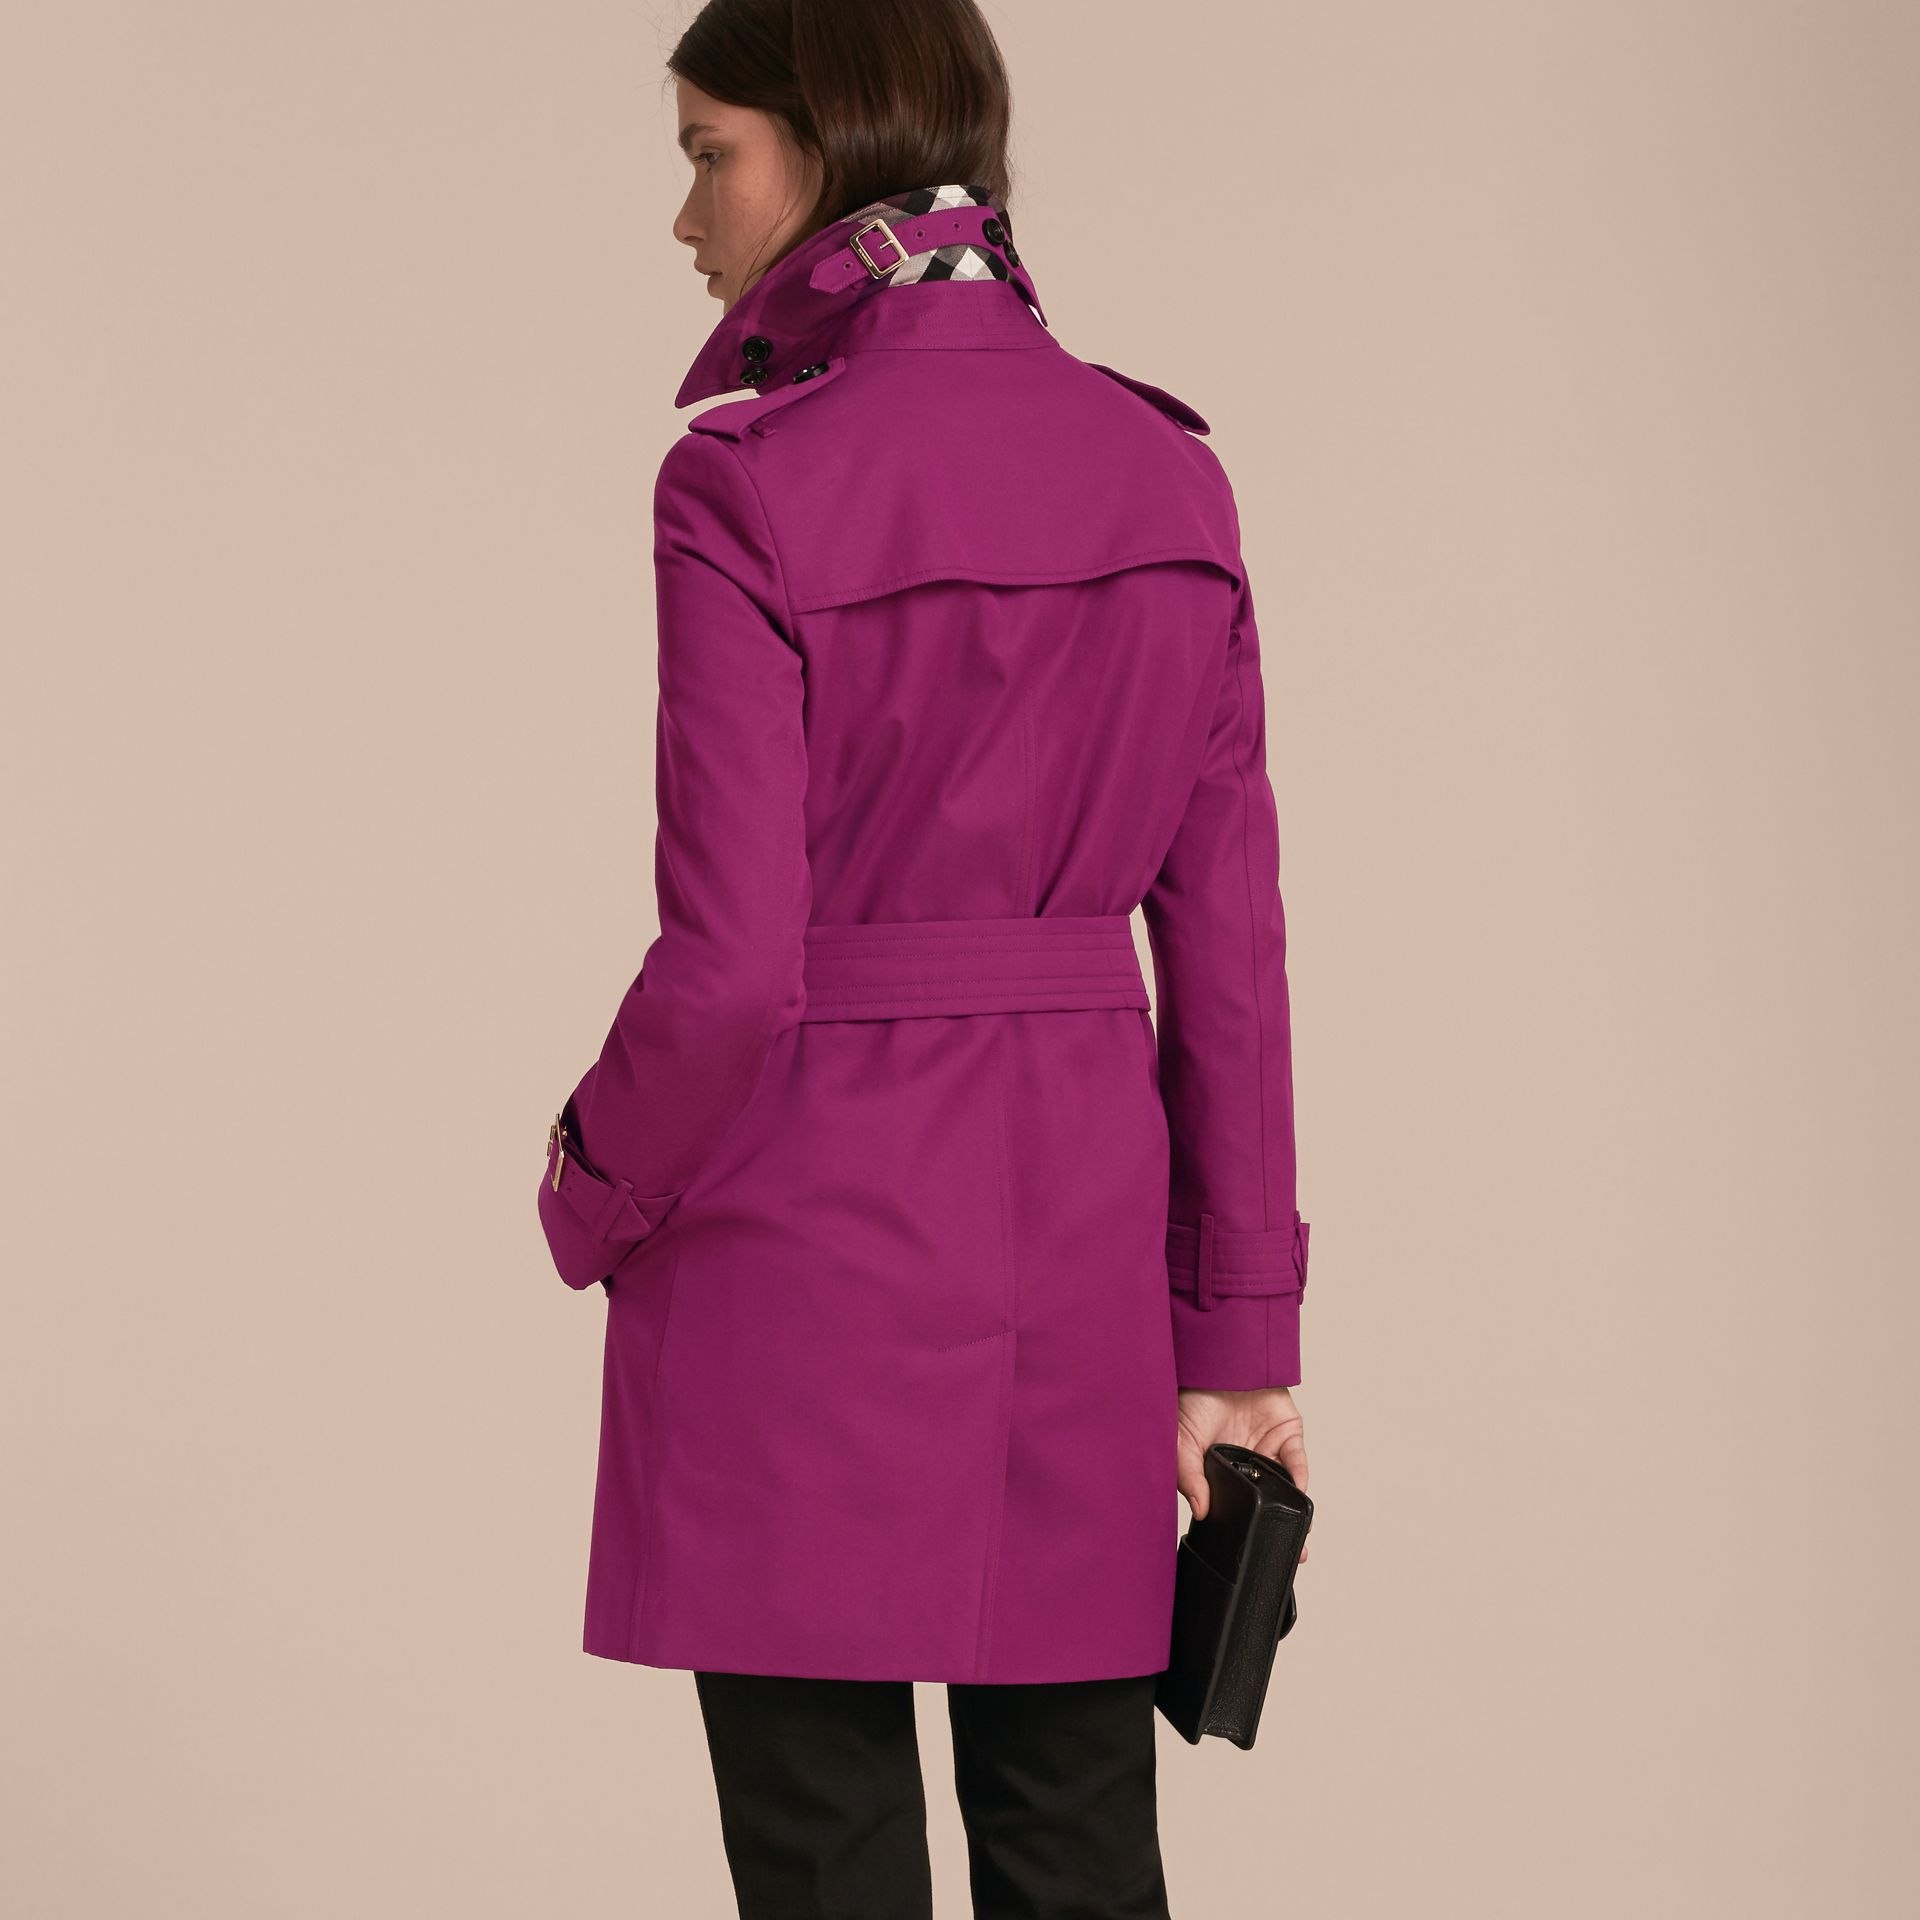 Magenta pink Single-breasted Trench Coat with Metal Buckle Detail Magenta Pink - gallery image 3